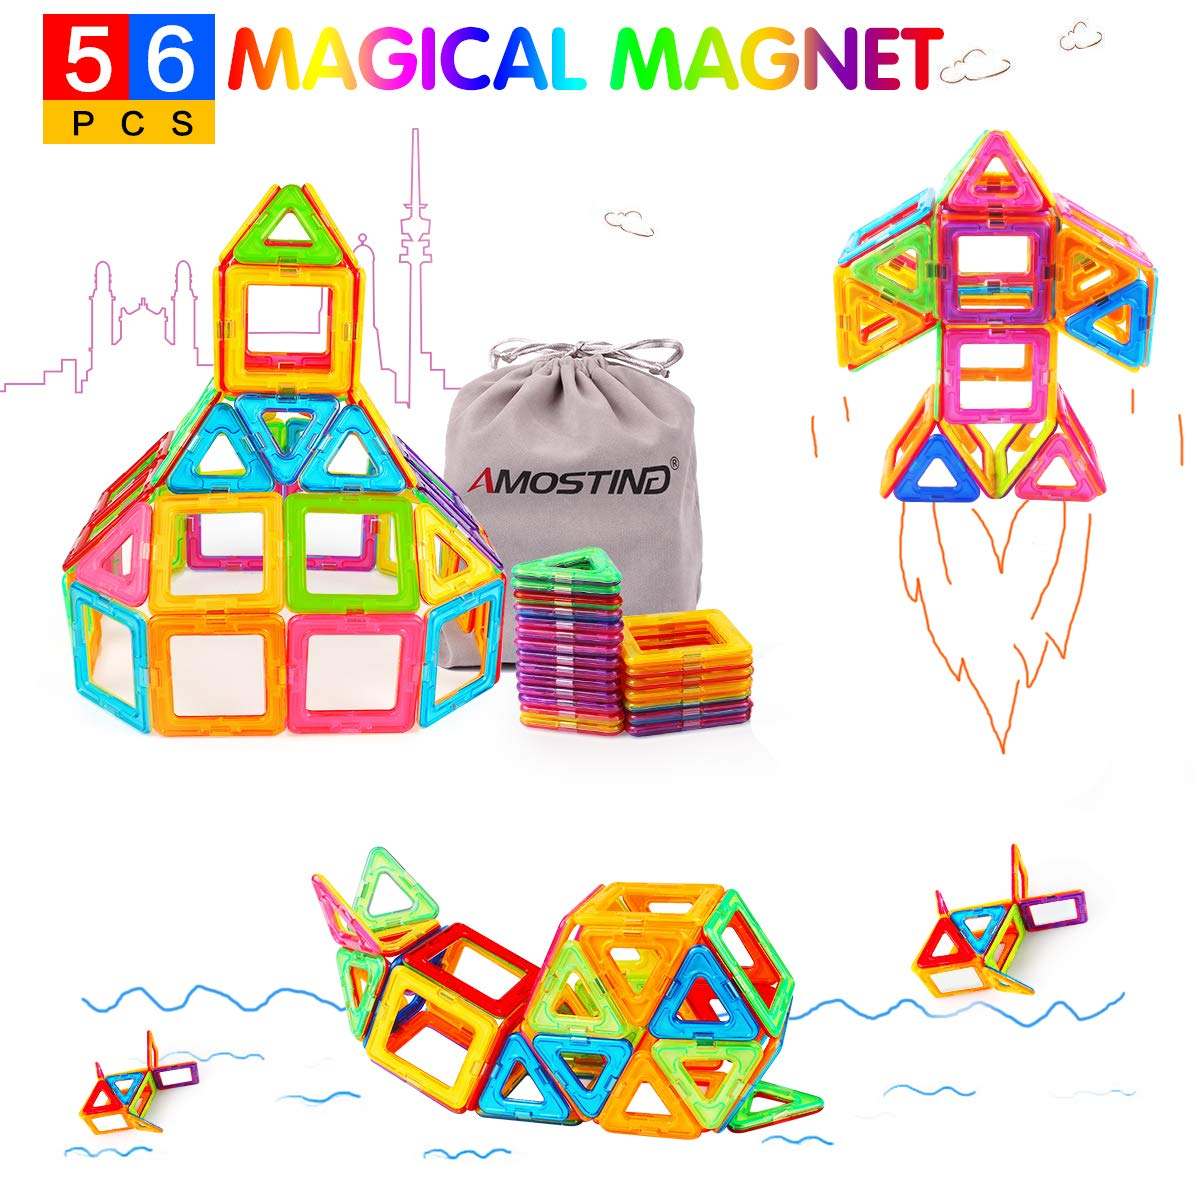 Magnetic Blocks Building Set for Kids, Magnetic Tiles Educational Building Construction Toys for Boys and Girls with Storage Bag - 56pcs